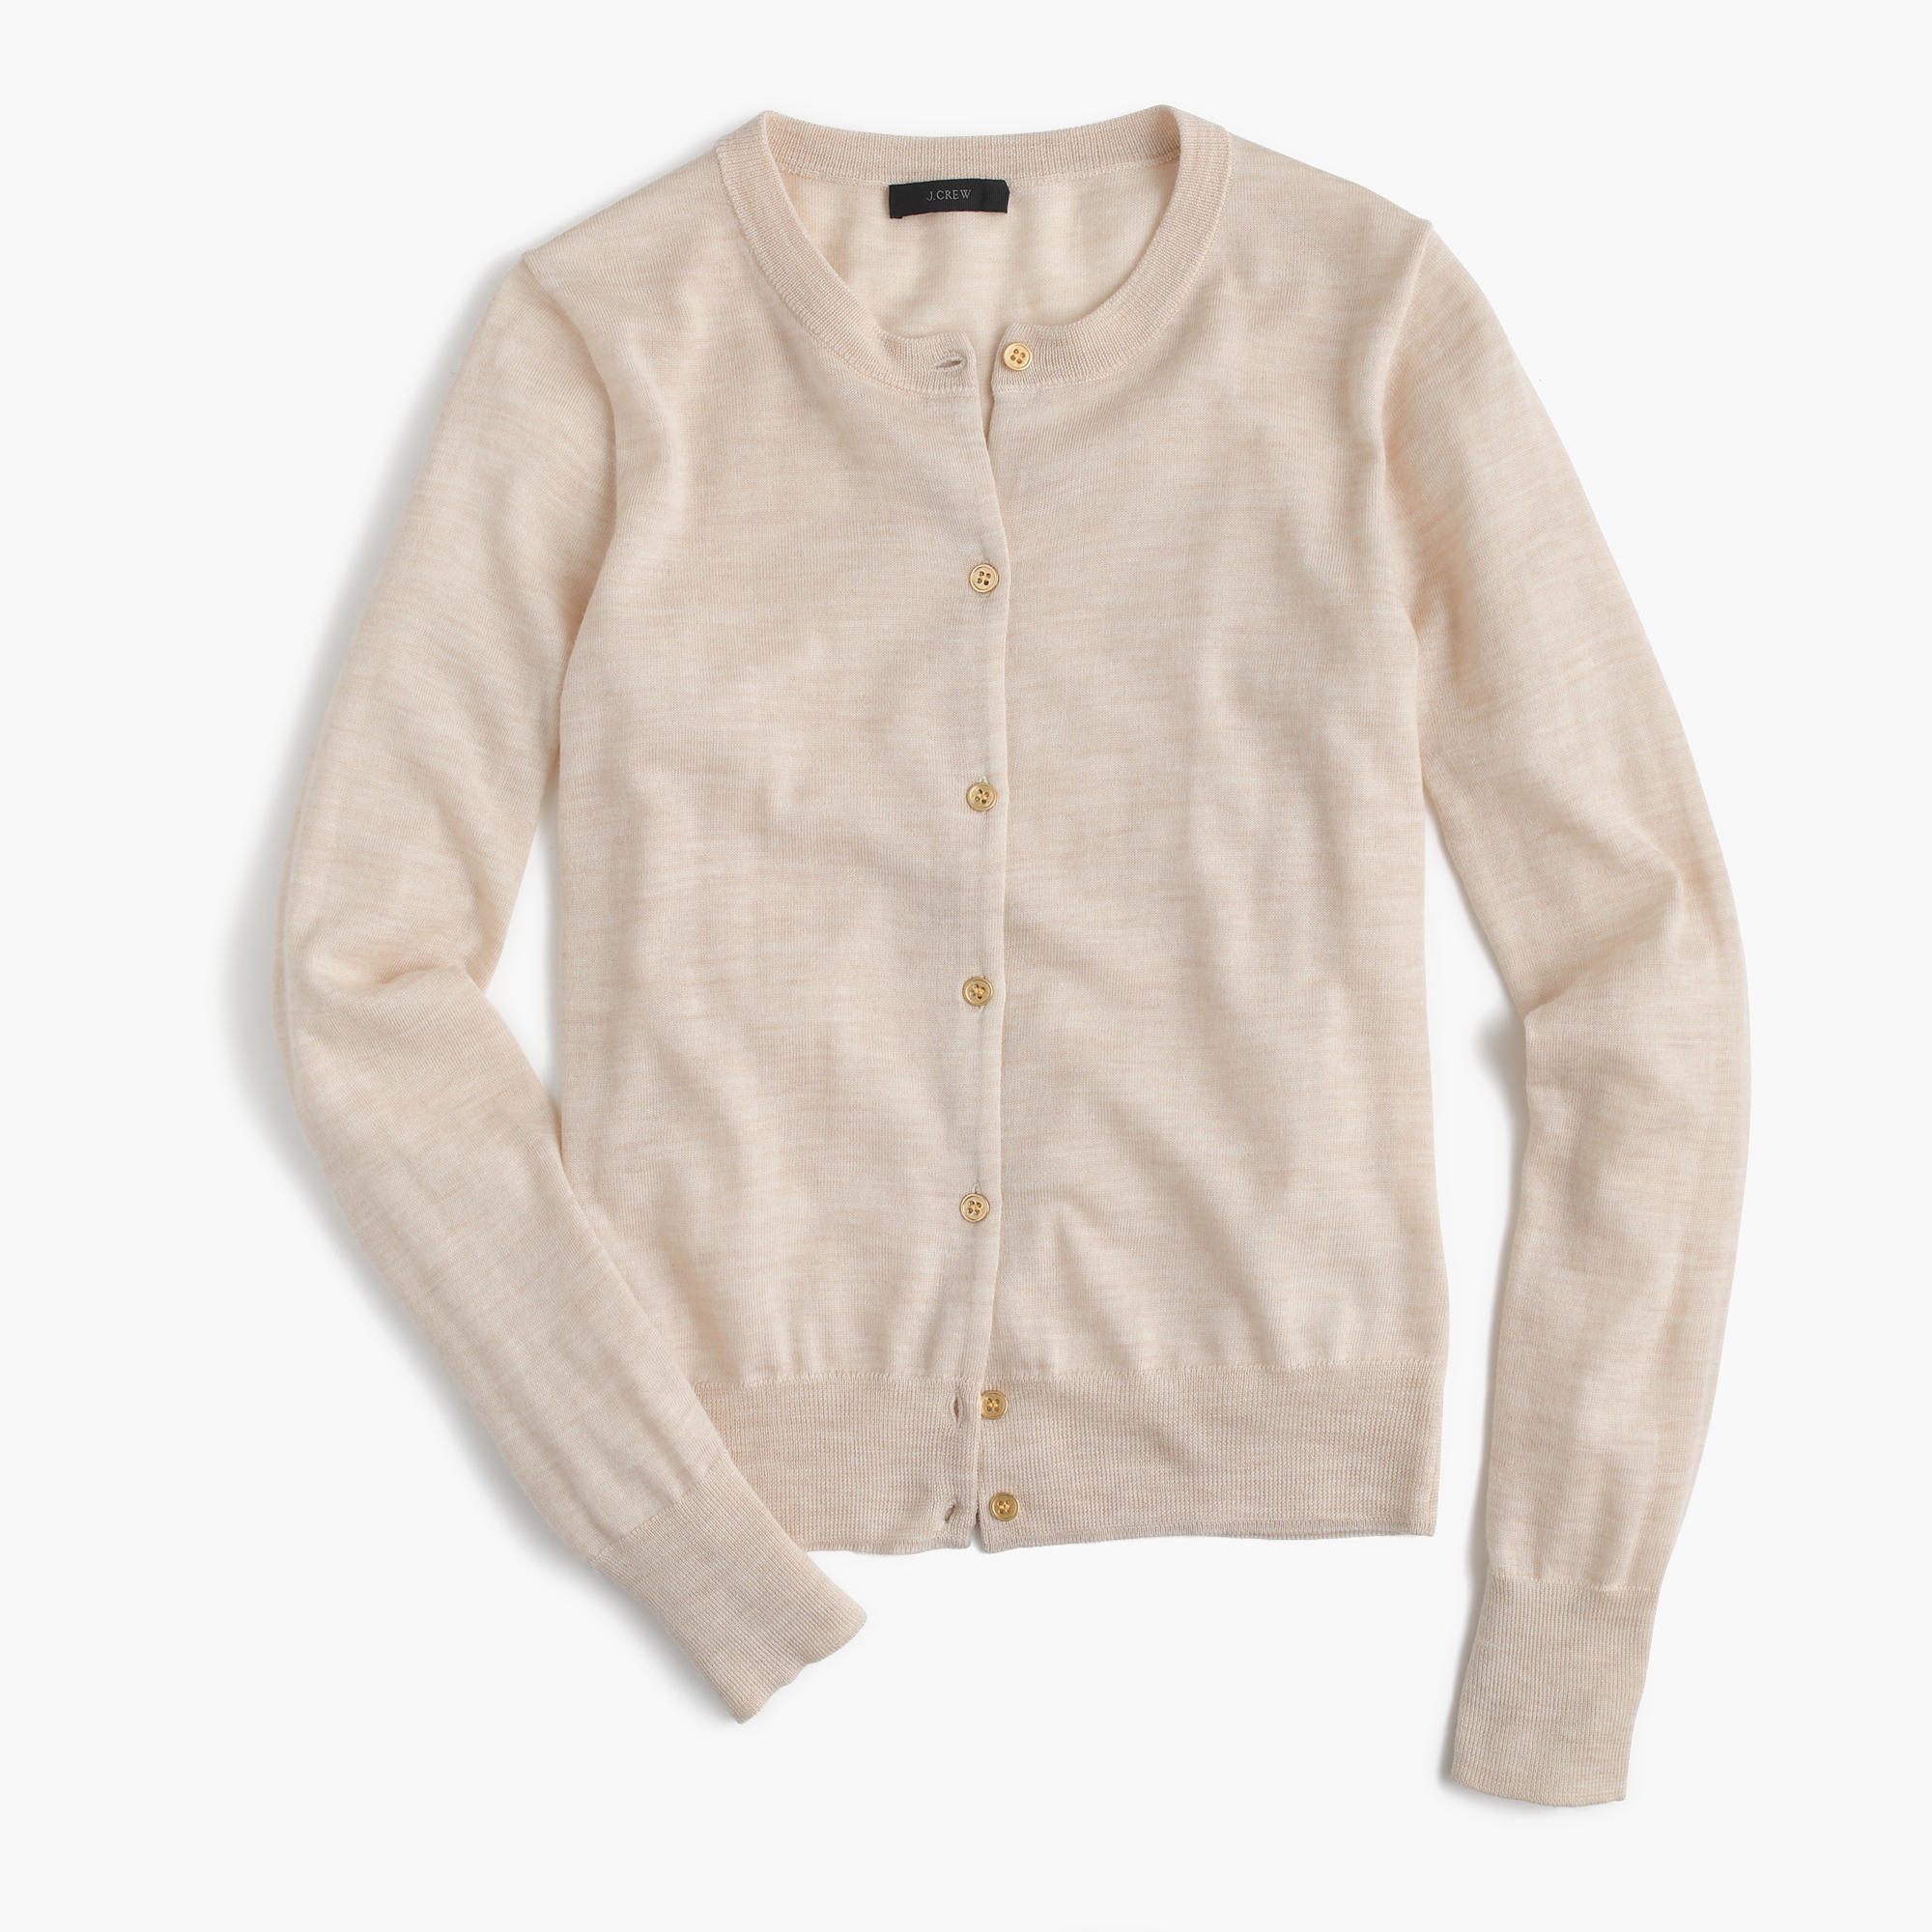 J.crew Lightweight Wool Jackie Cardigan Sweater in Natural | Lyst